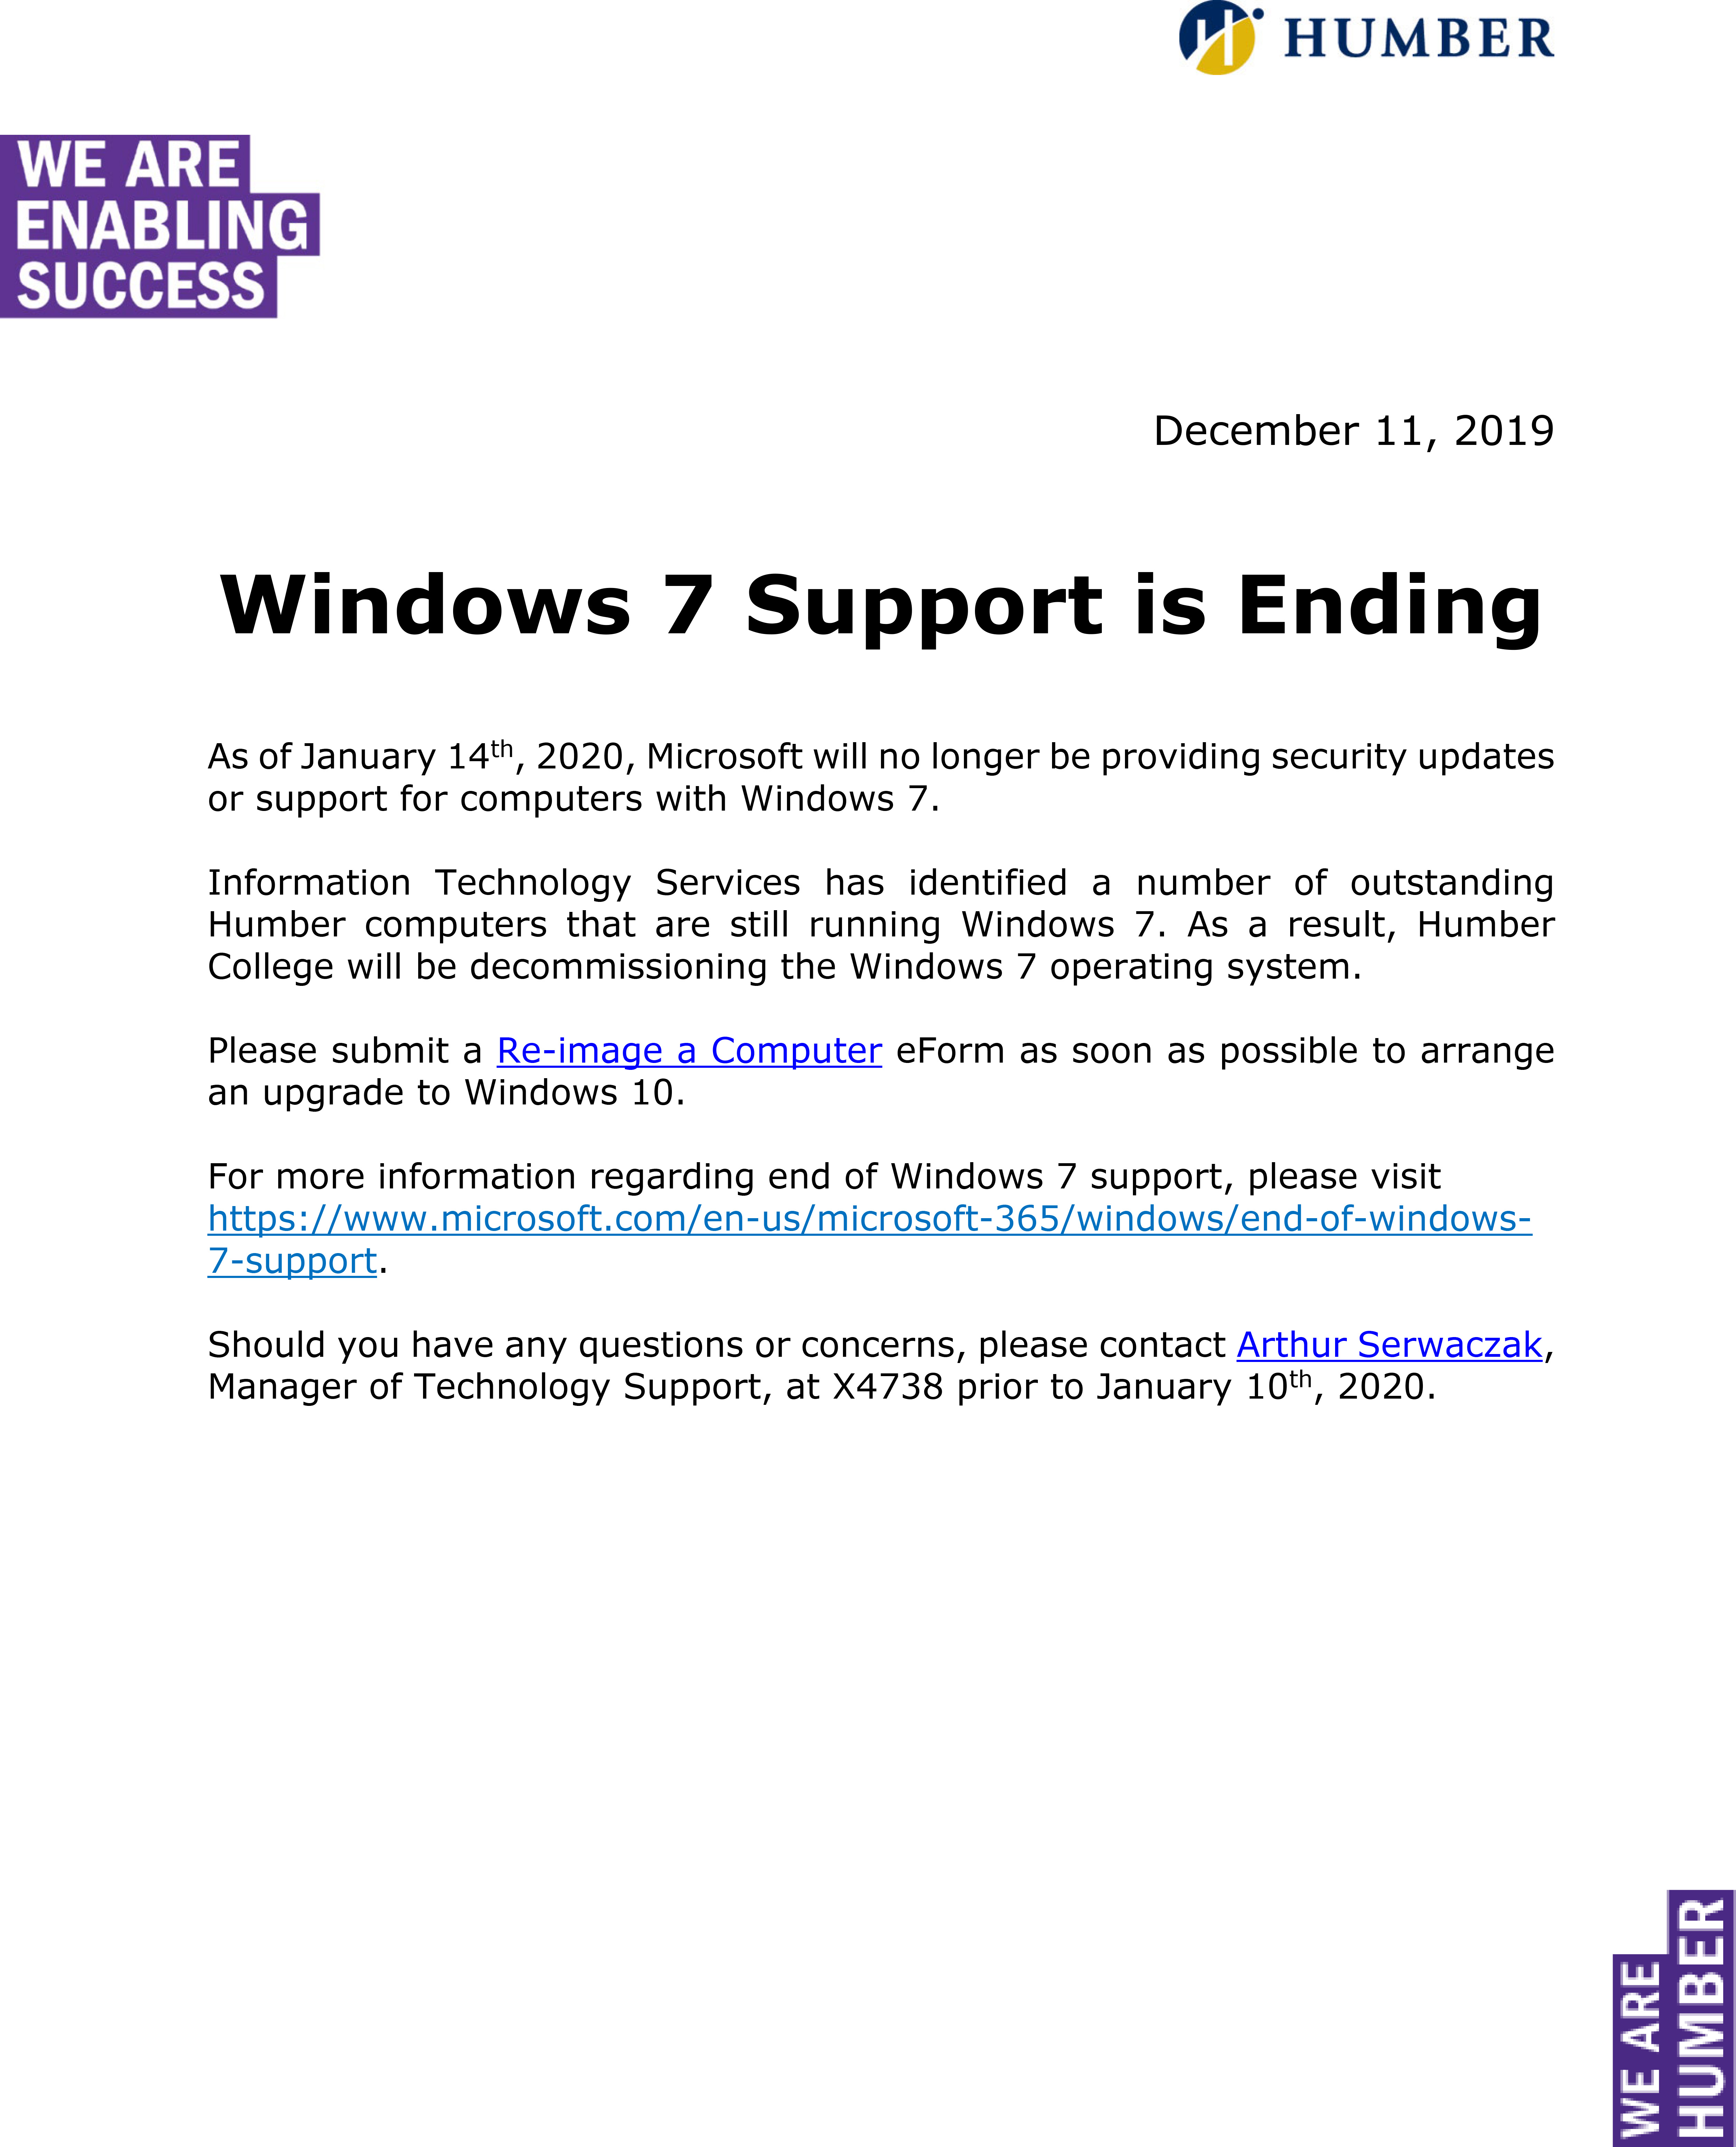 Windows 7 Support is Ending